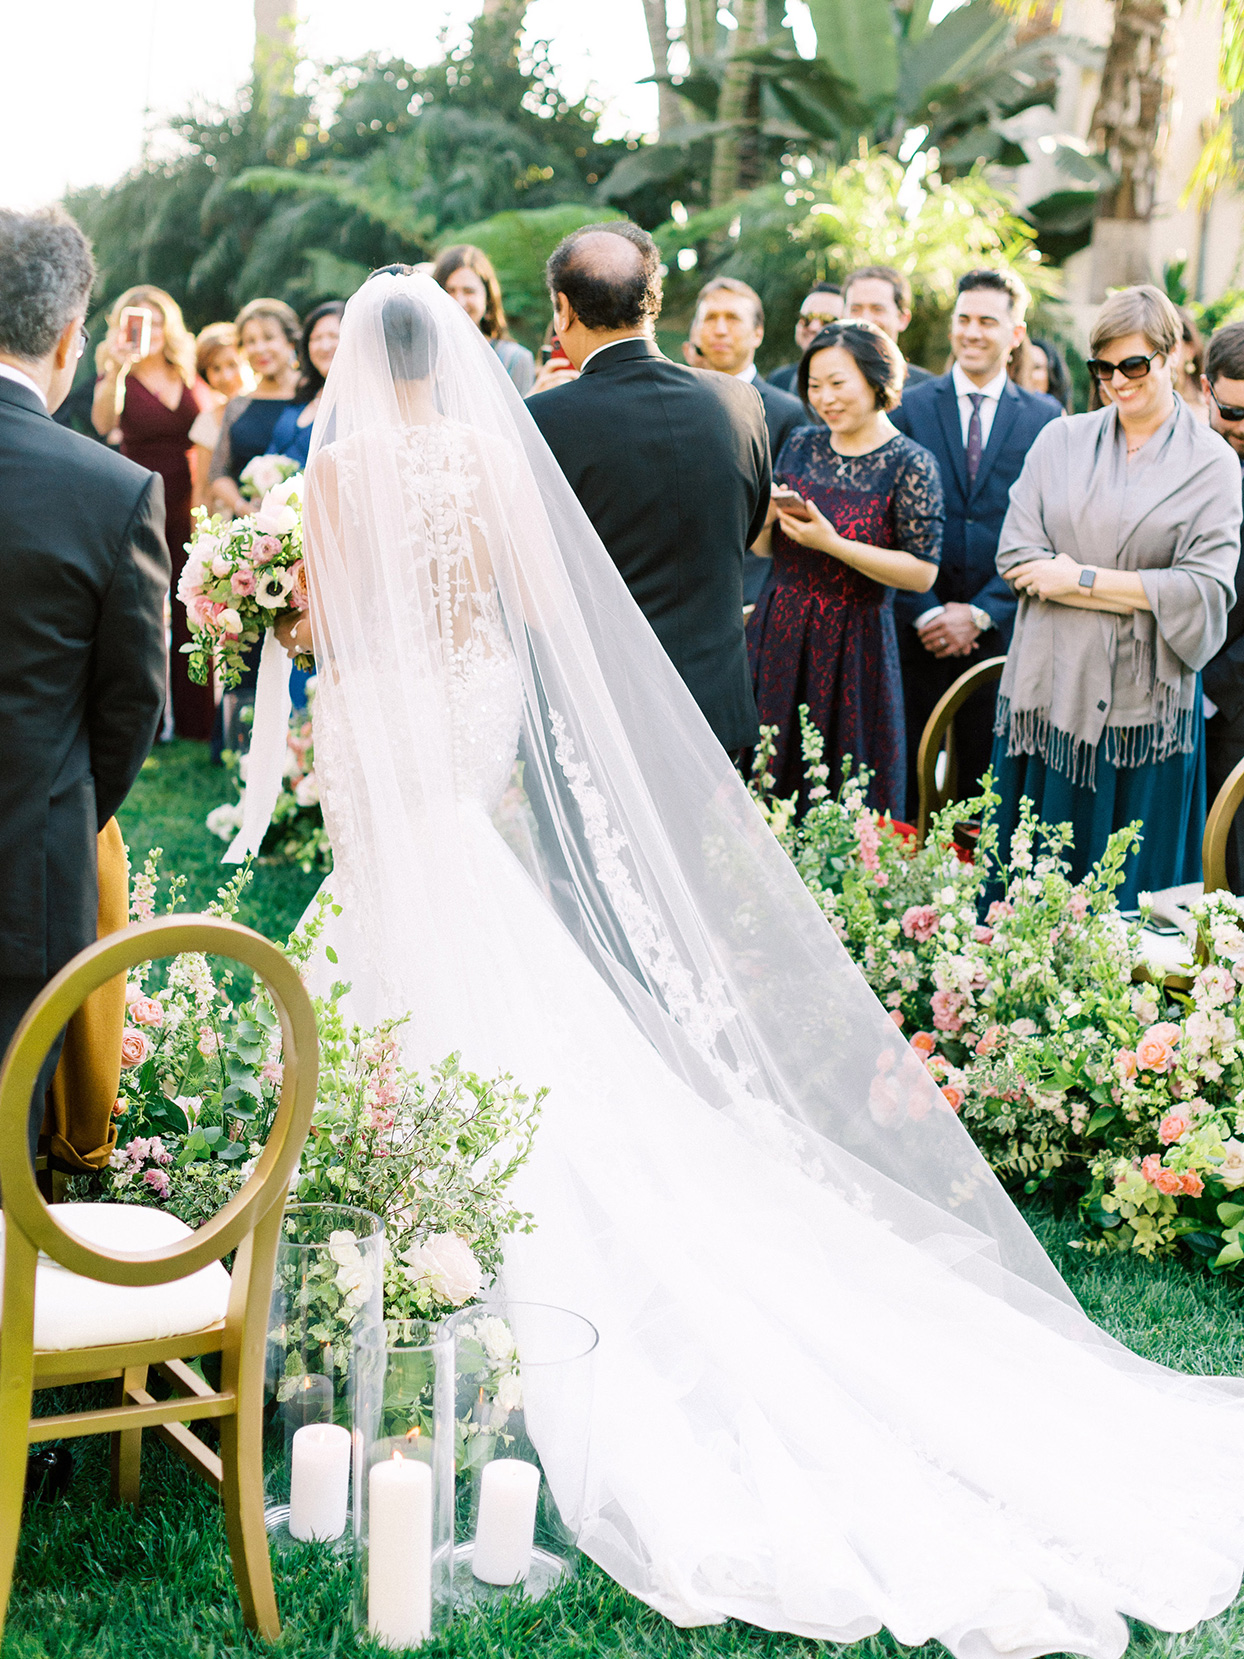 bride processing down aisle with father while guests stand and watch